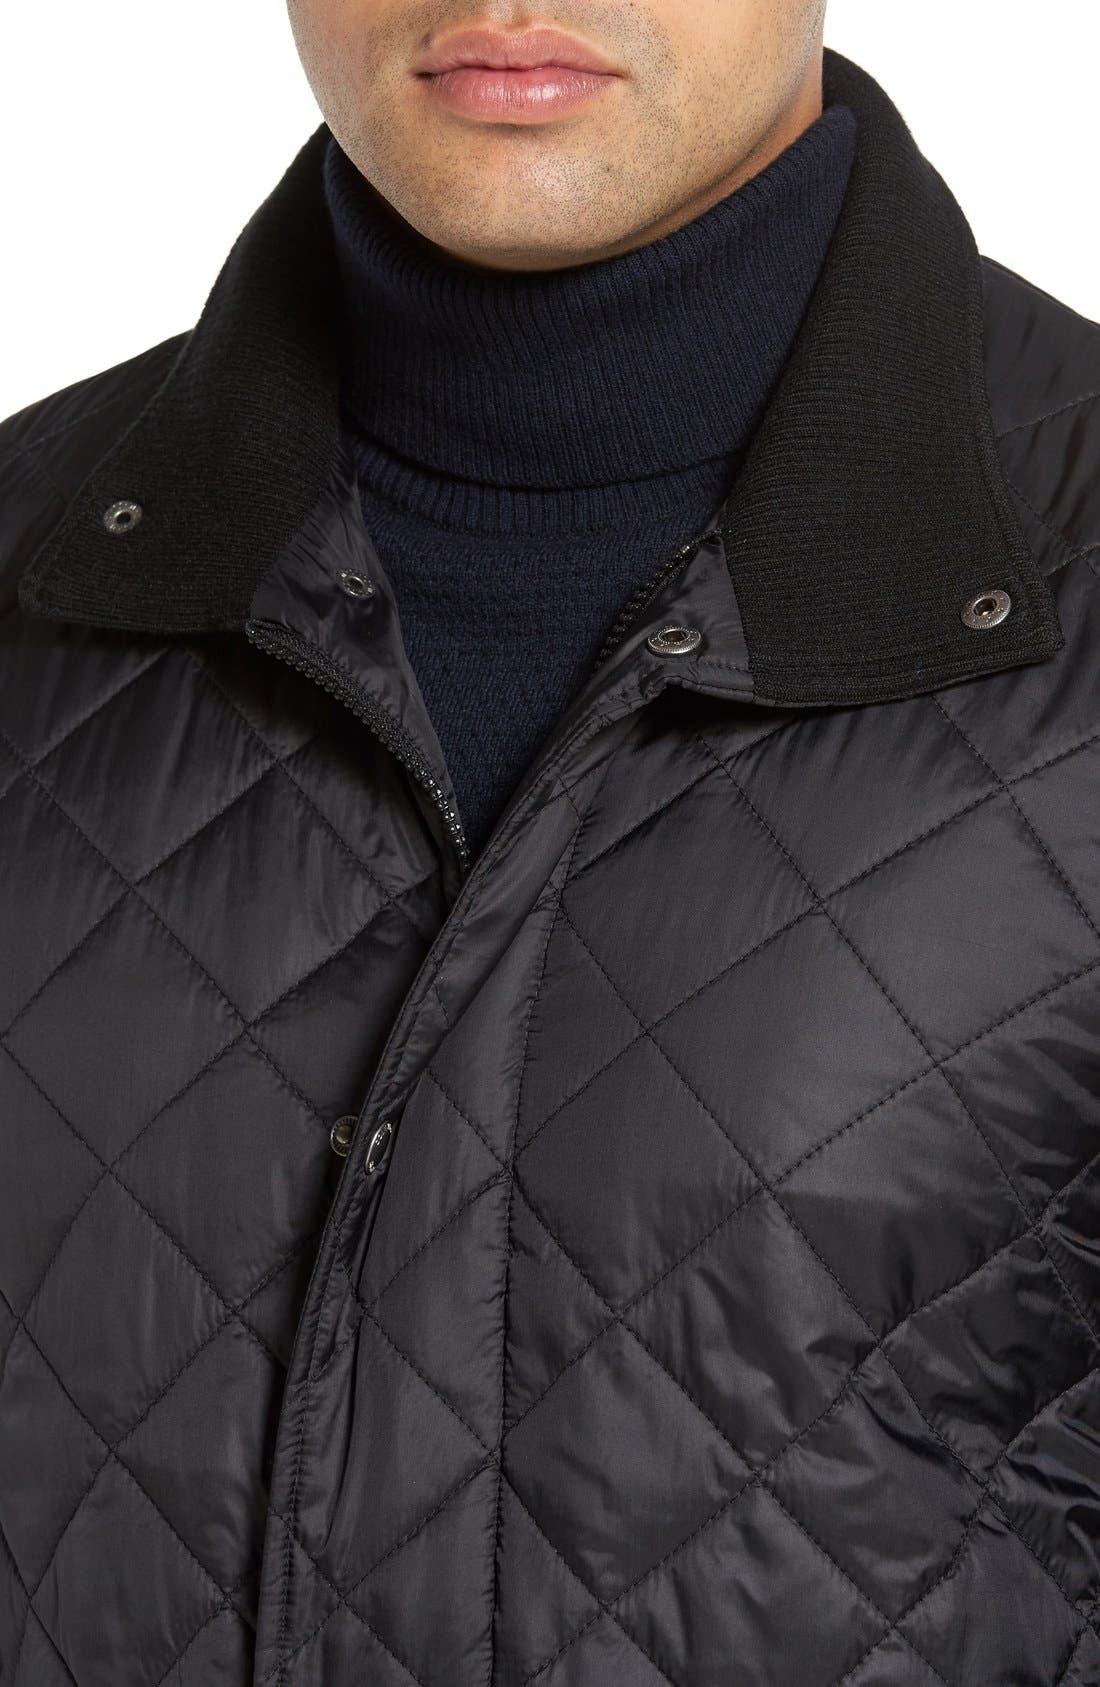 Diamond Quilted Jacket,                             Alternate thumbnail 4, color,                             BLACK